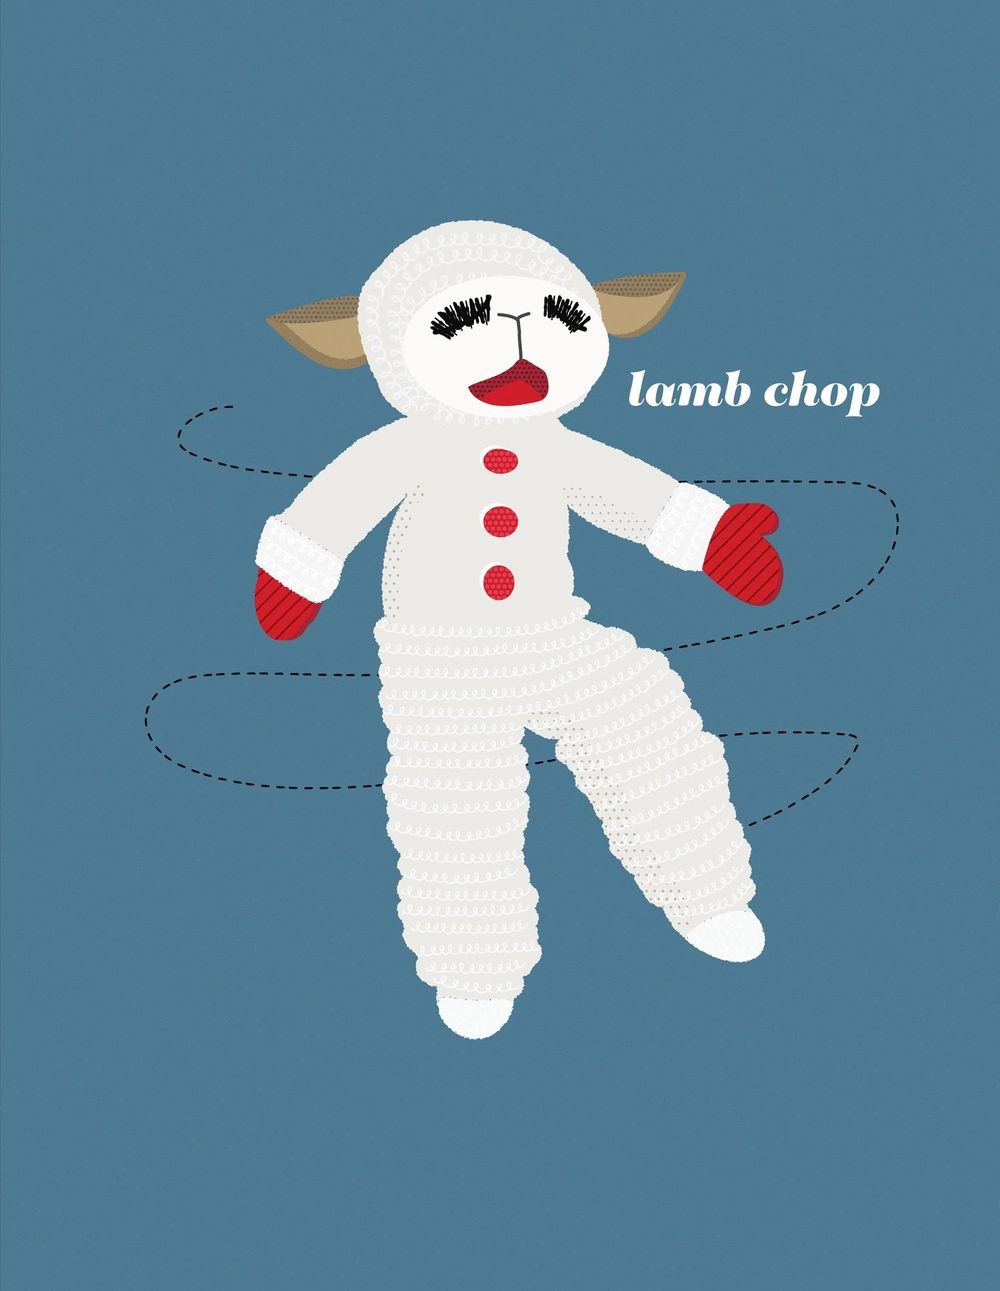 Lamp Chop - image 1 - student project